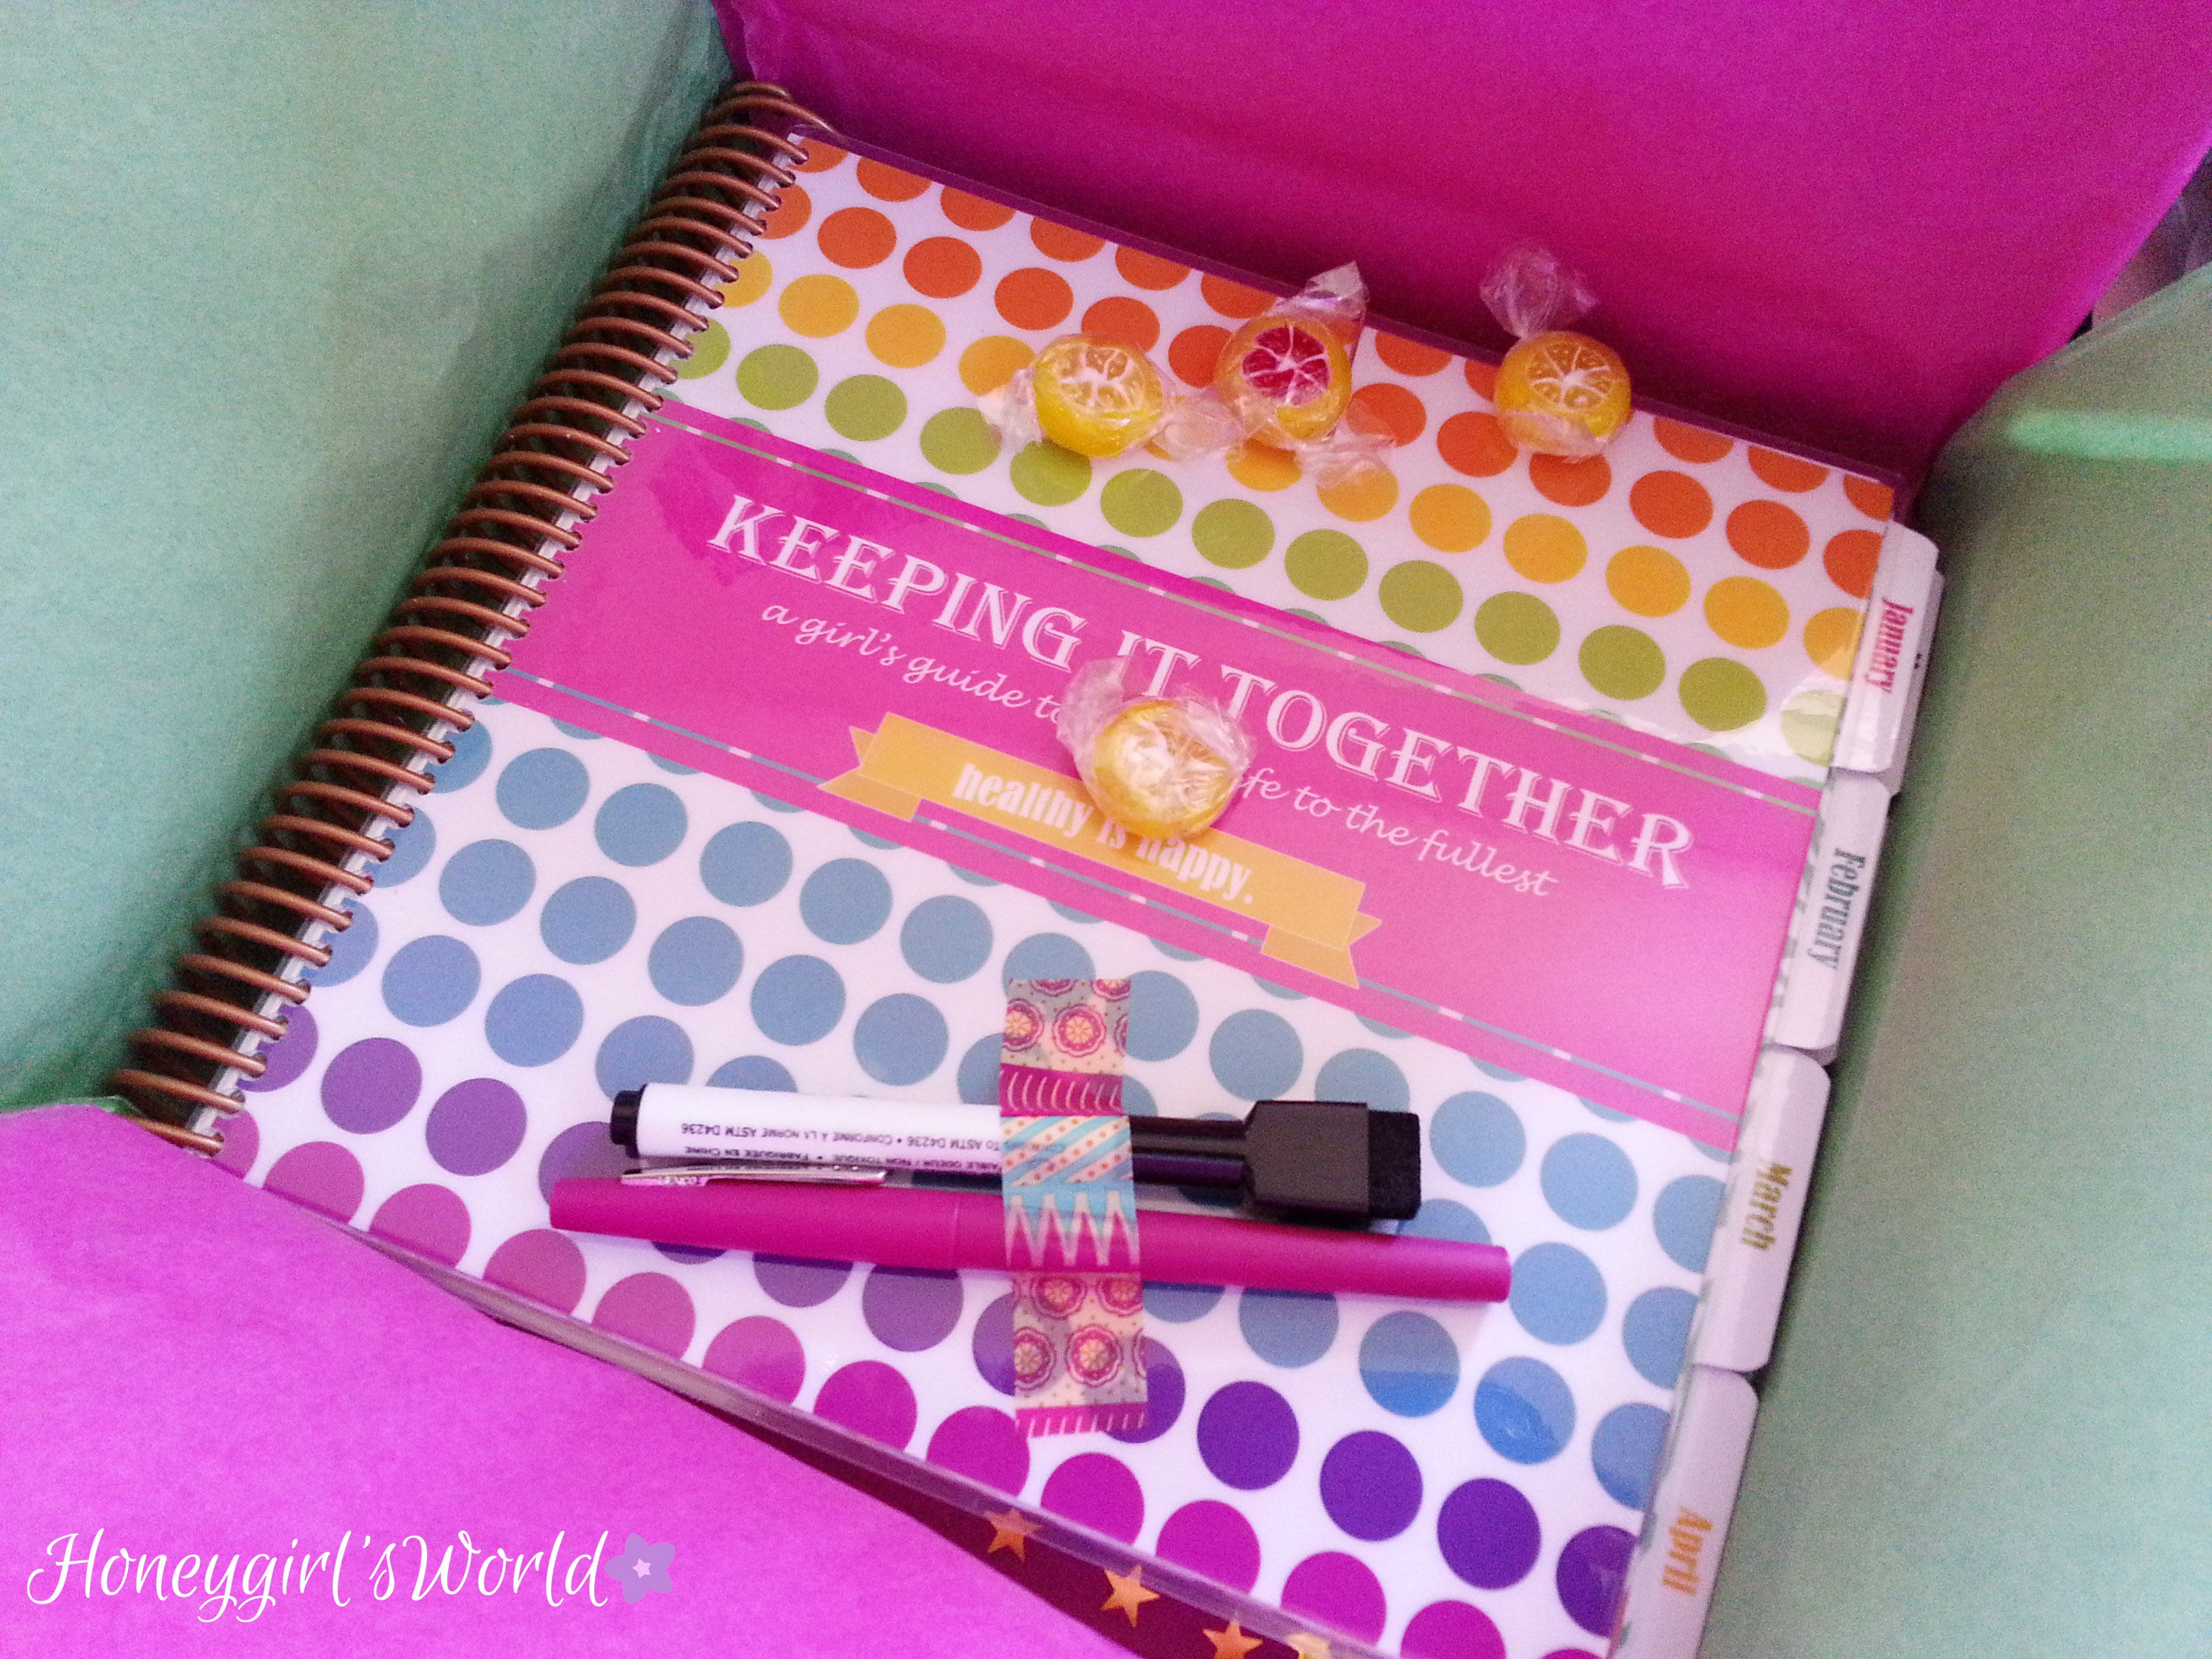 Get Organized with the Keeping It Together – 2014 Planner (Open box, reveal & my thoughts)